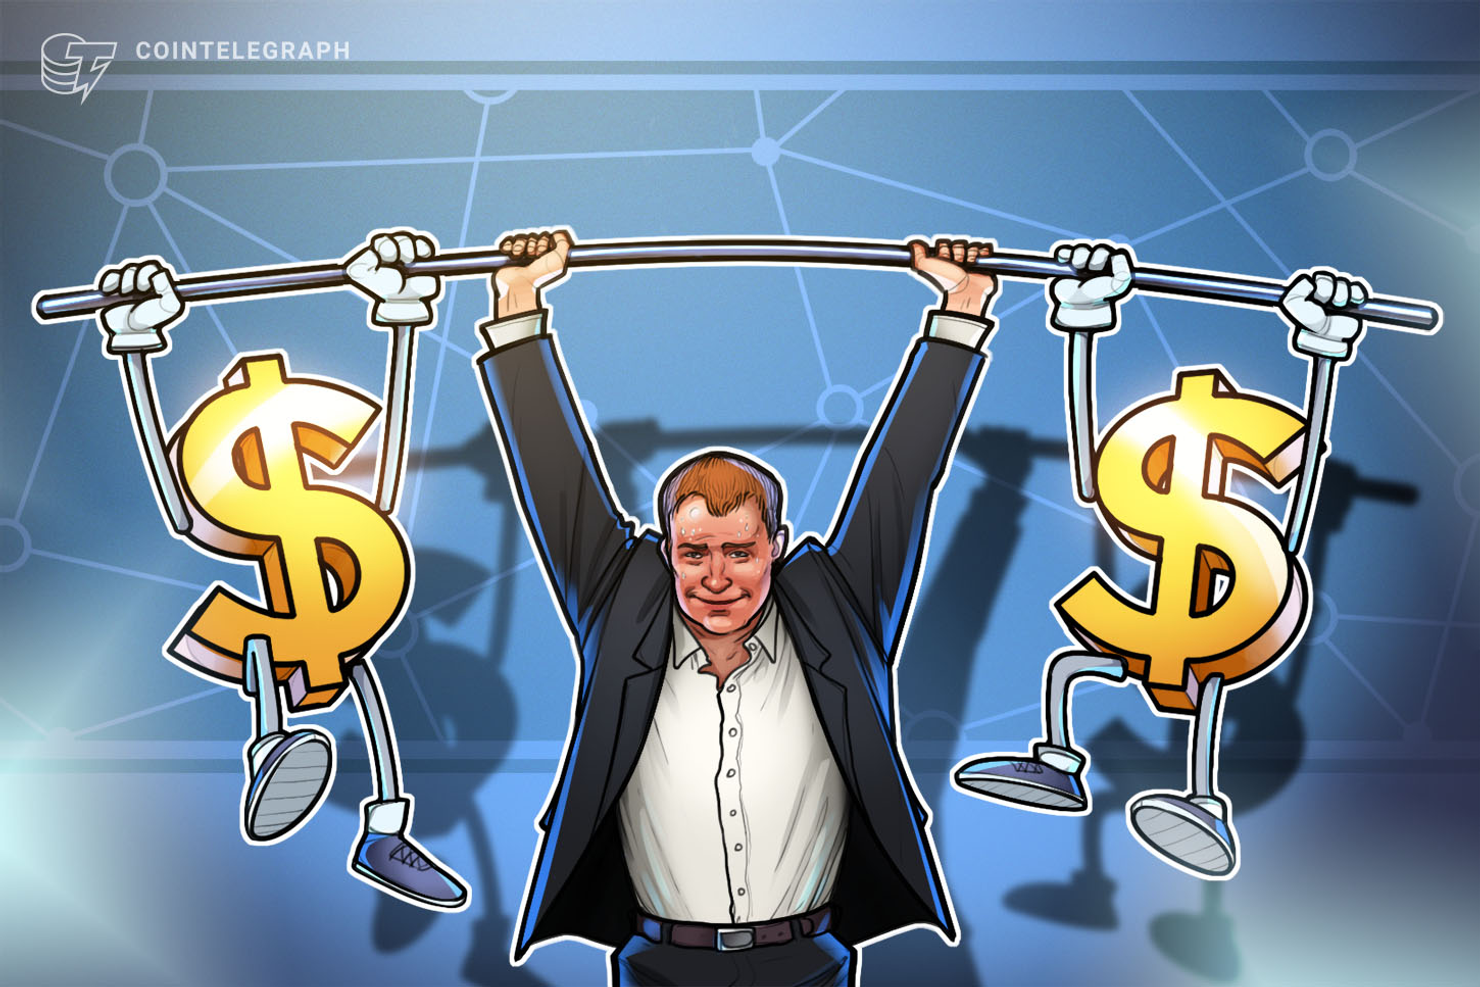 Tax Compliance Firm TaxBit Raises $5M to Improve Crypto Tax Reporting